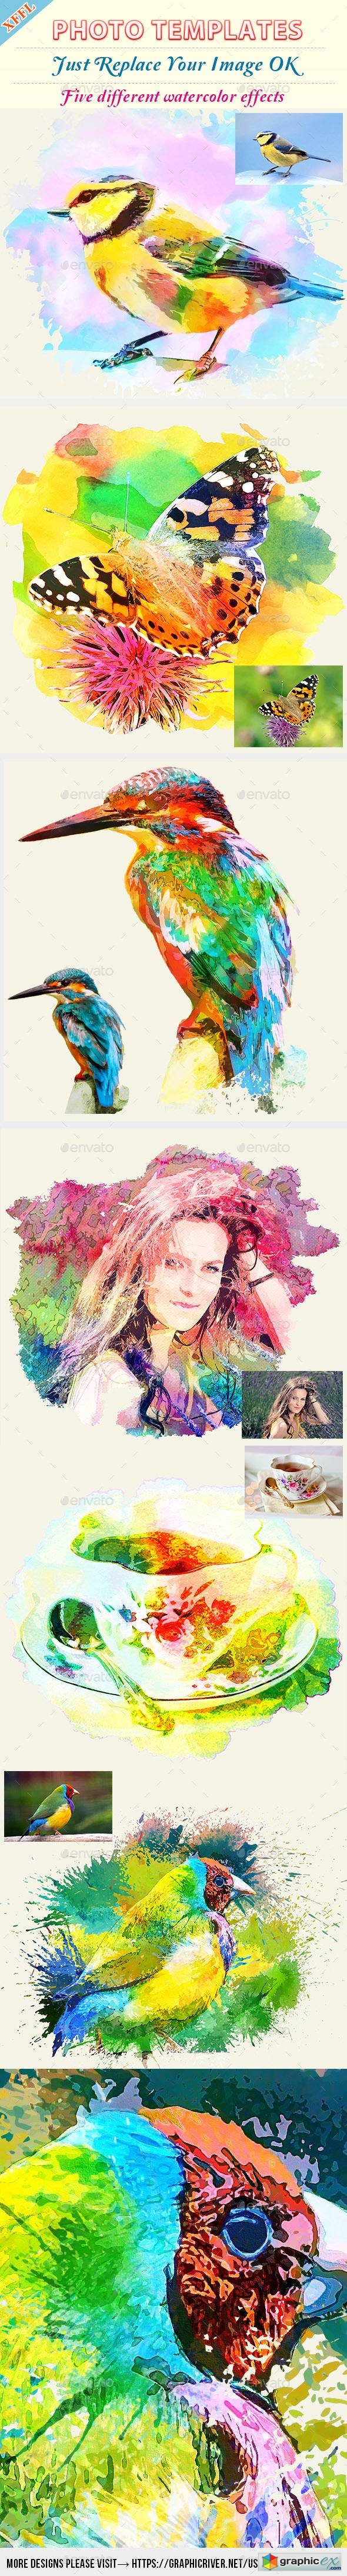 Watercolor Art Photo Template